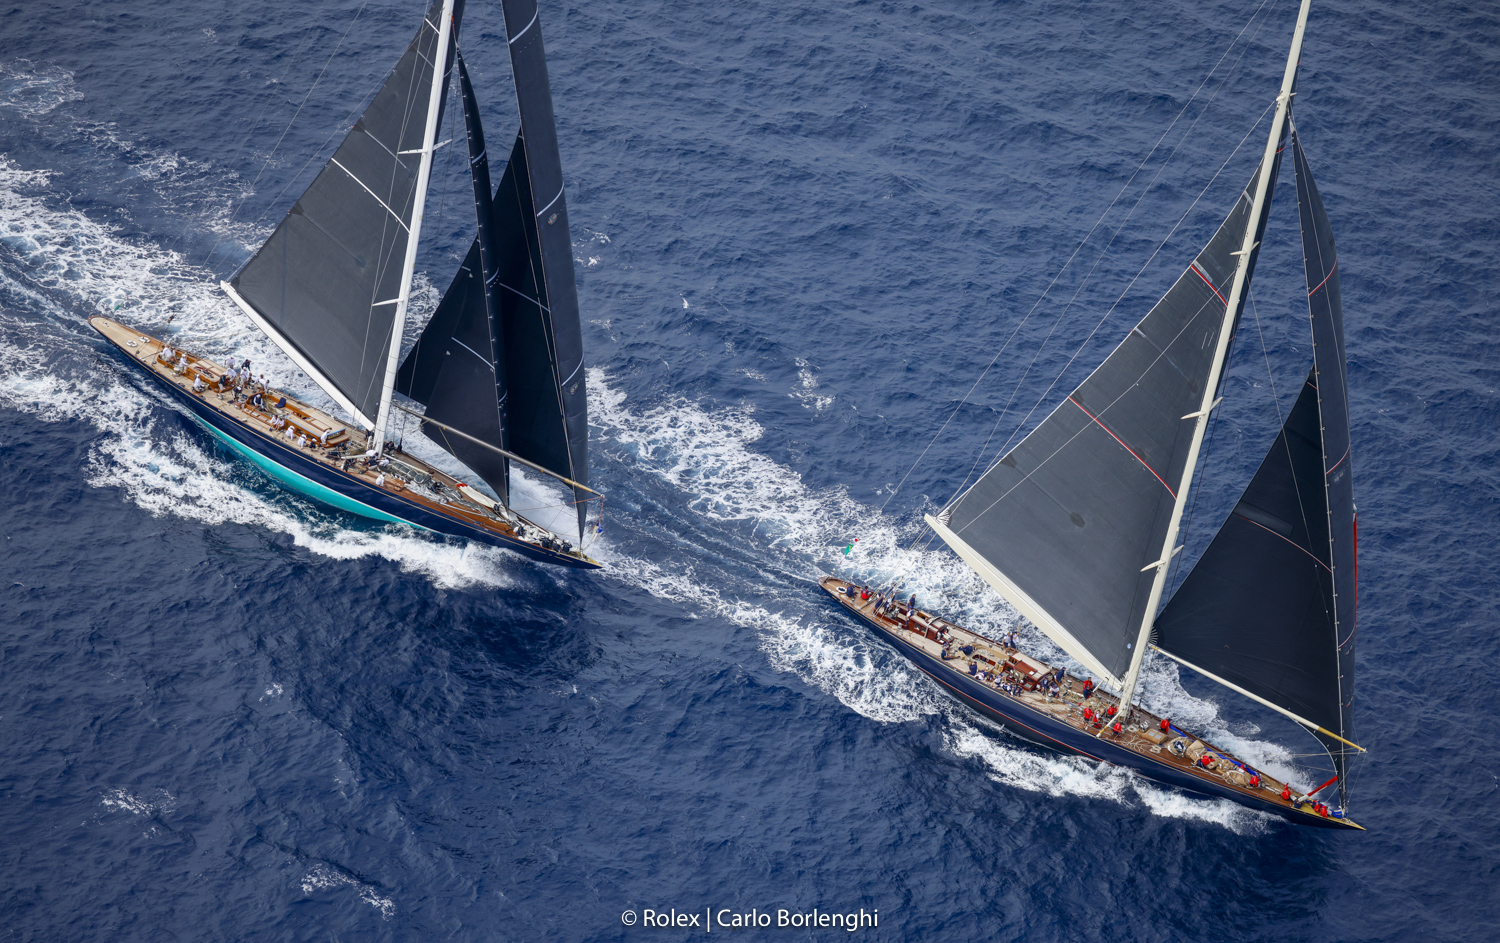 Fourth day of intense racing at 31st Maxi Yacht Rolex Cup - NEWS - Yacht Club Costa Smeralda